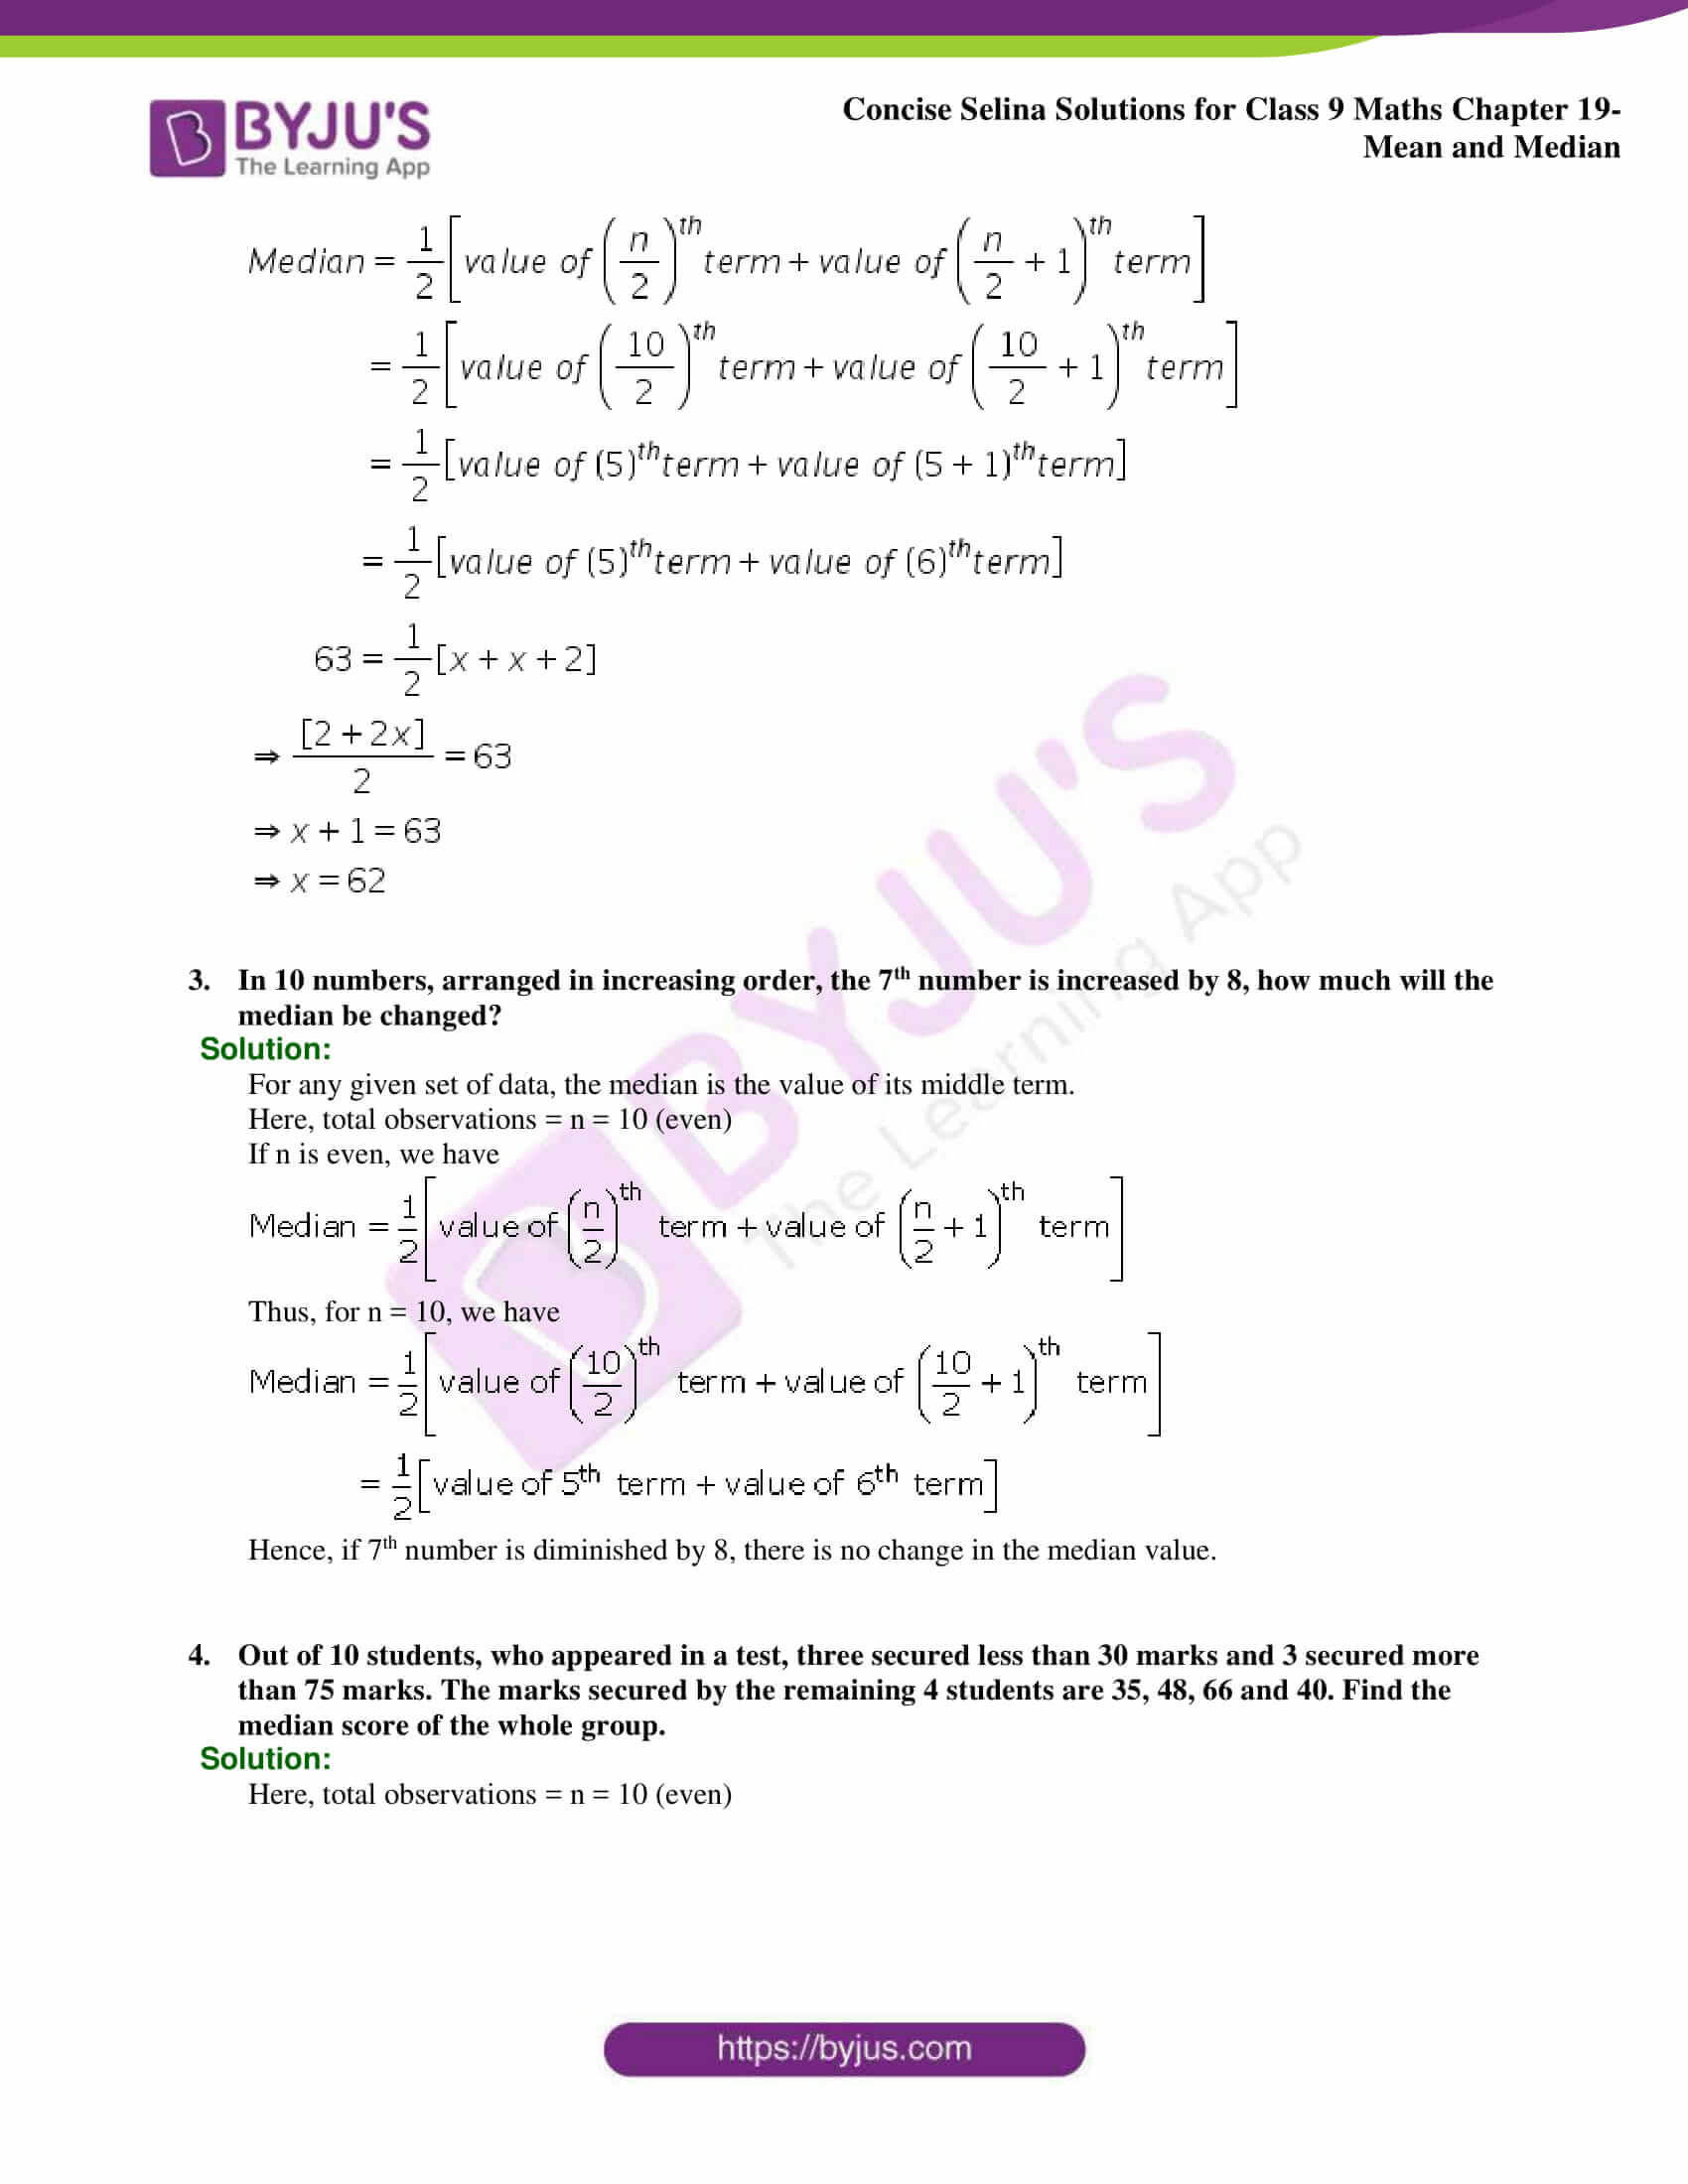 Concise Selina Solutions Class 9 Maths Chapter 19 Mean and Median part 11